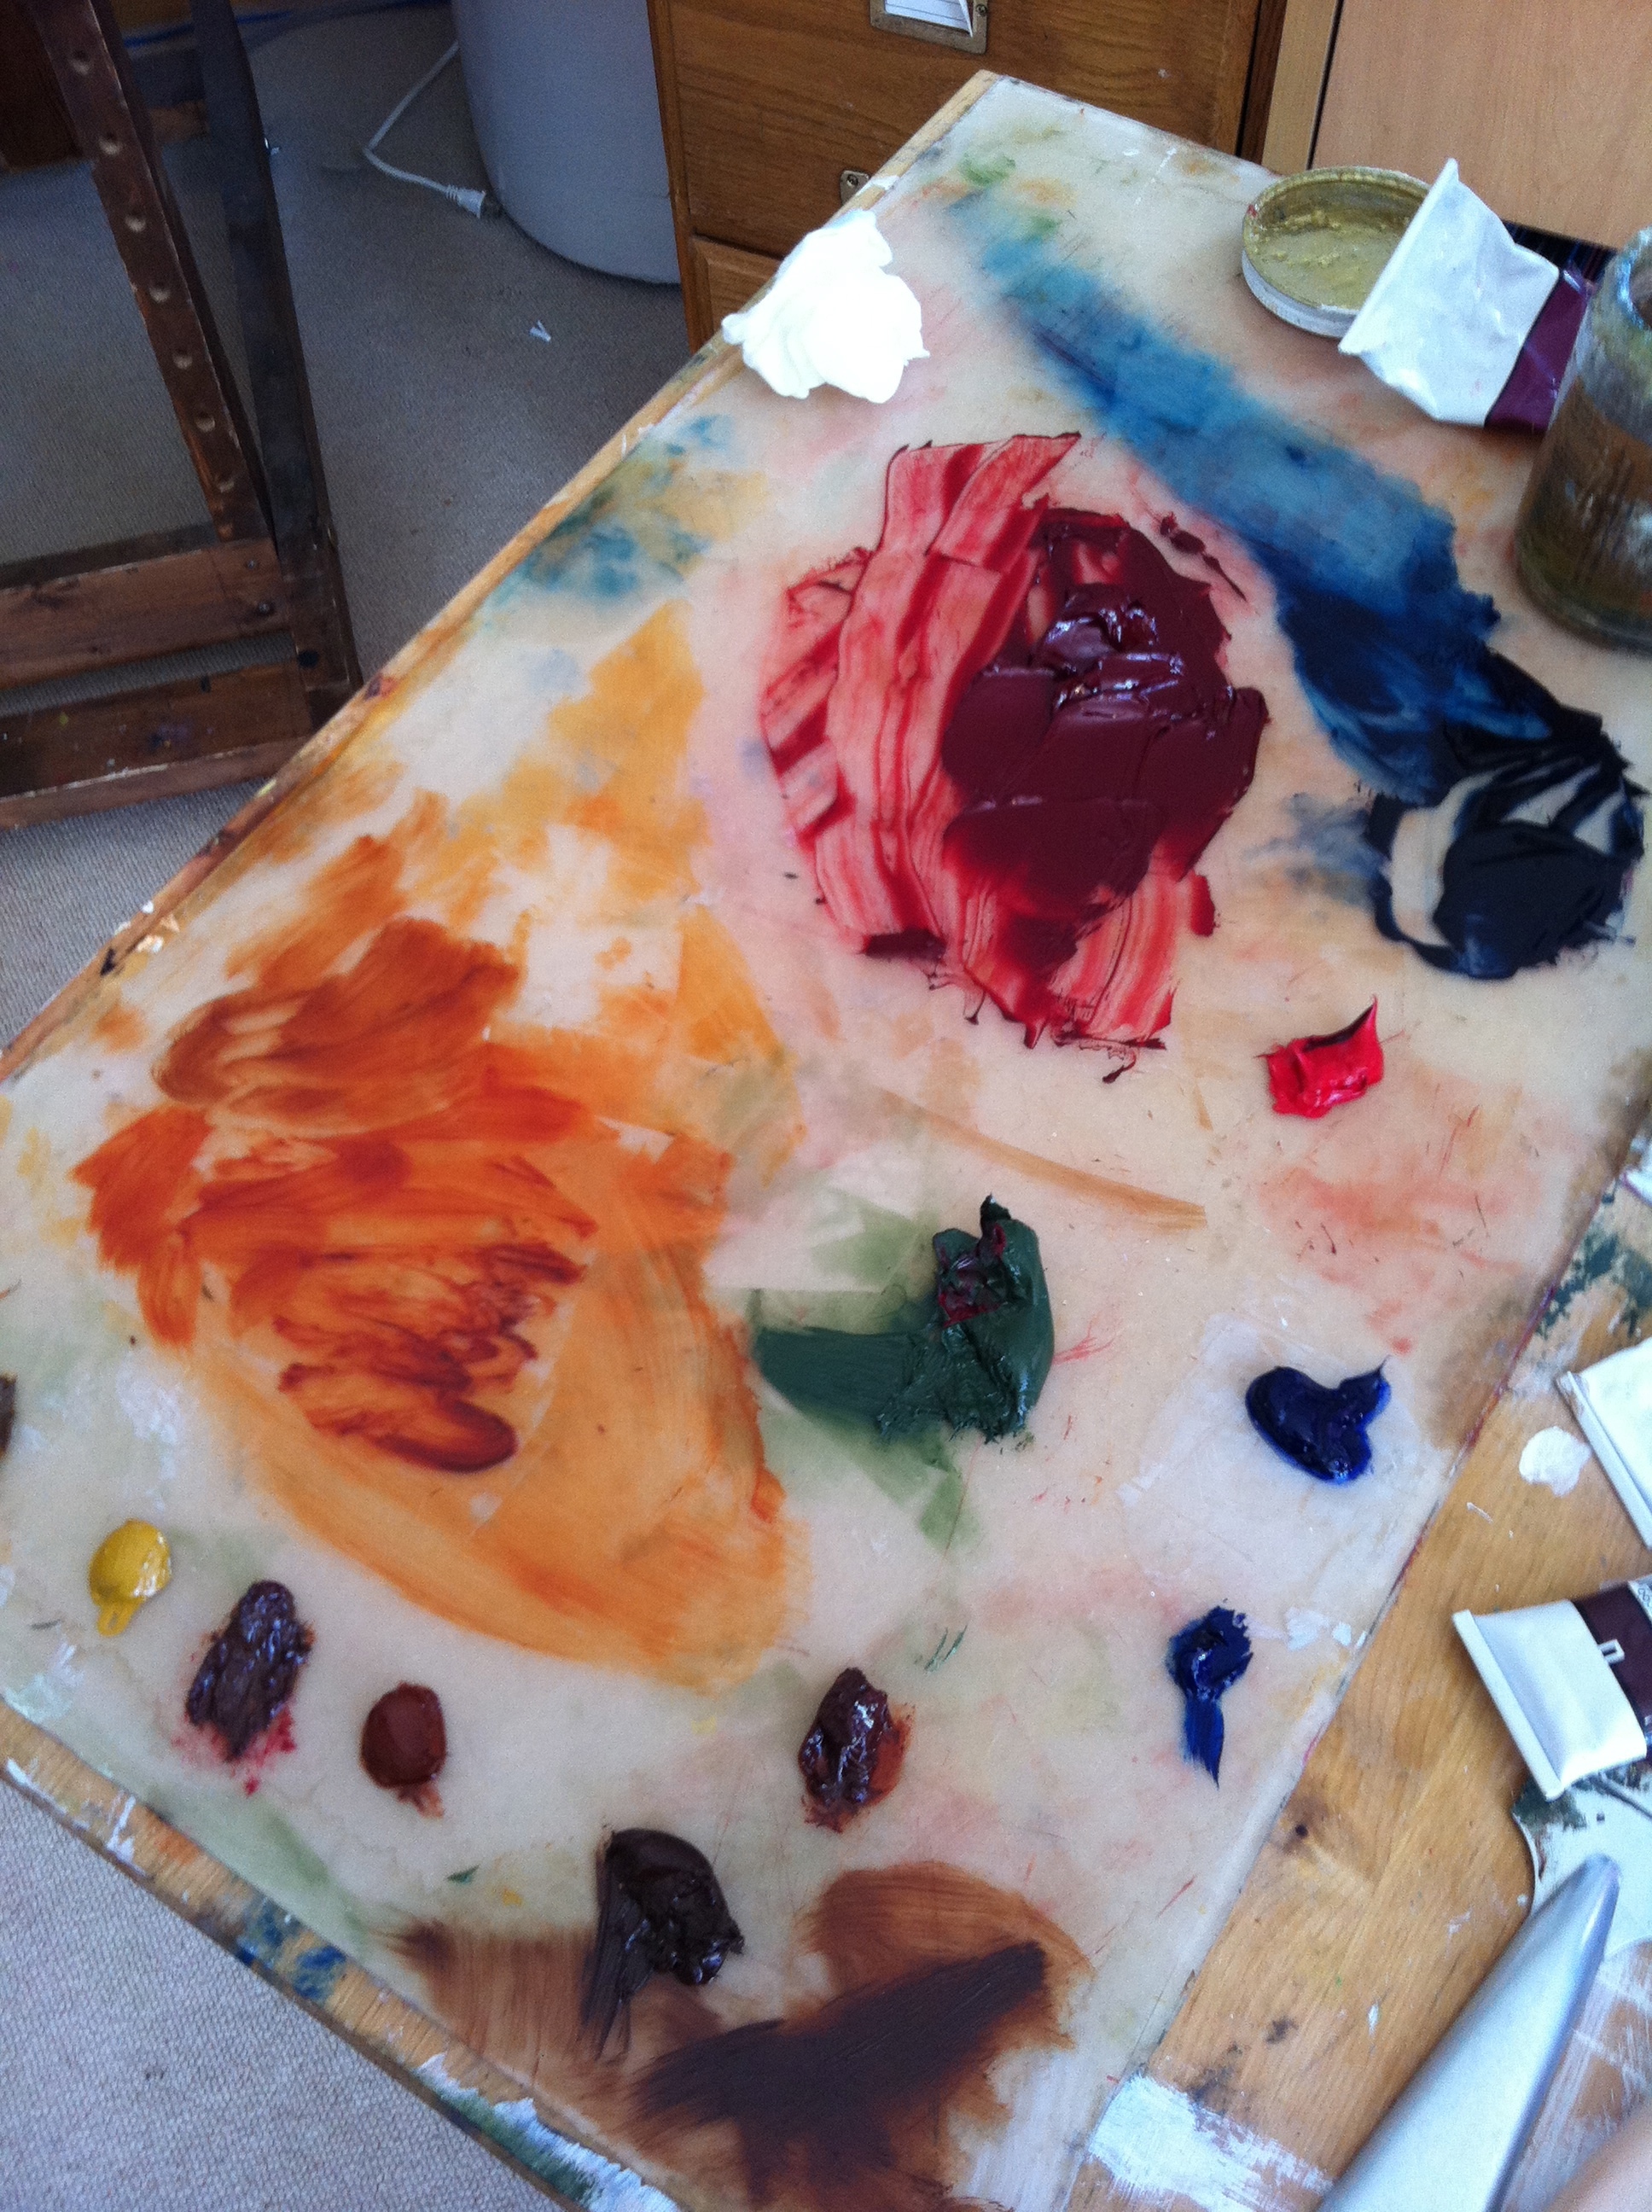 The Palette with oil paints